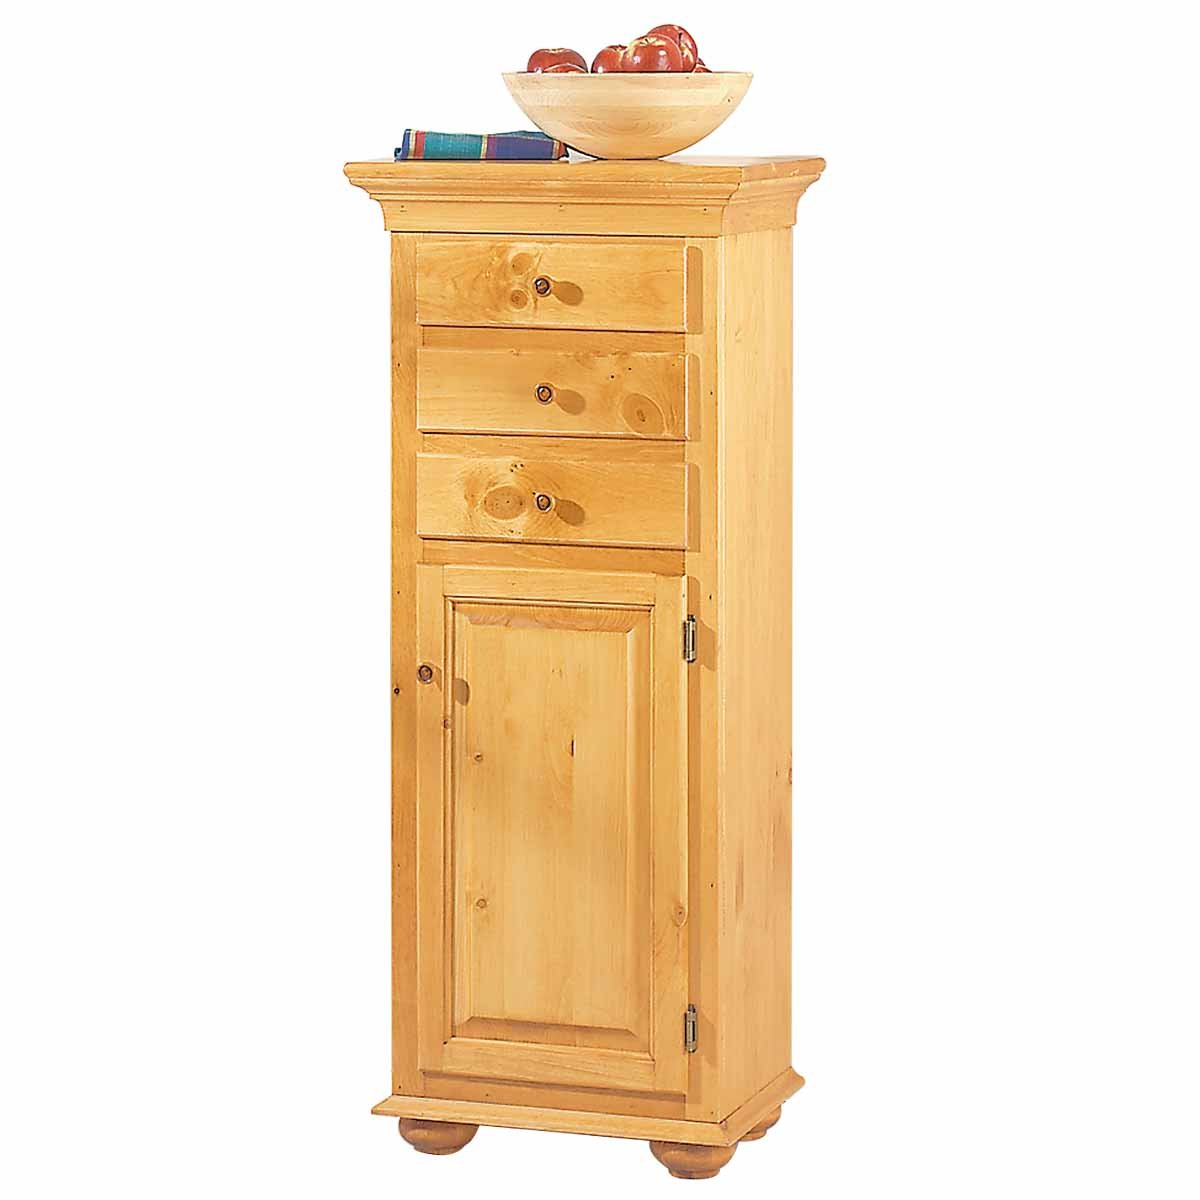 room pine jk jelly wood hutch storage dining cabinet with cupboard s furniture sam